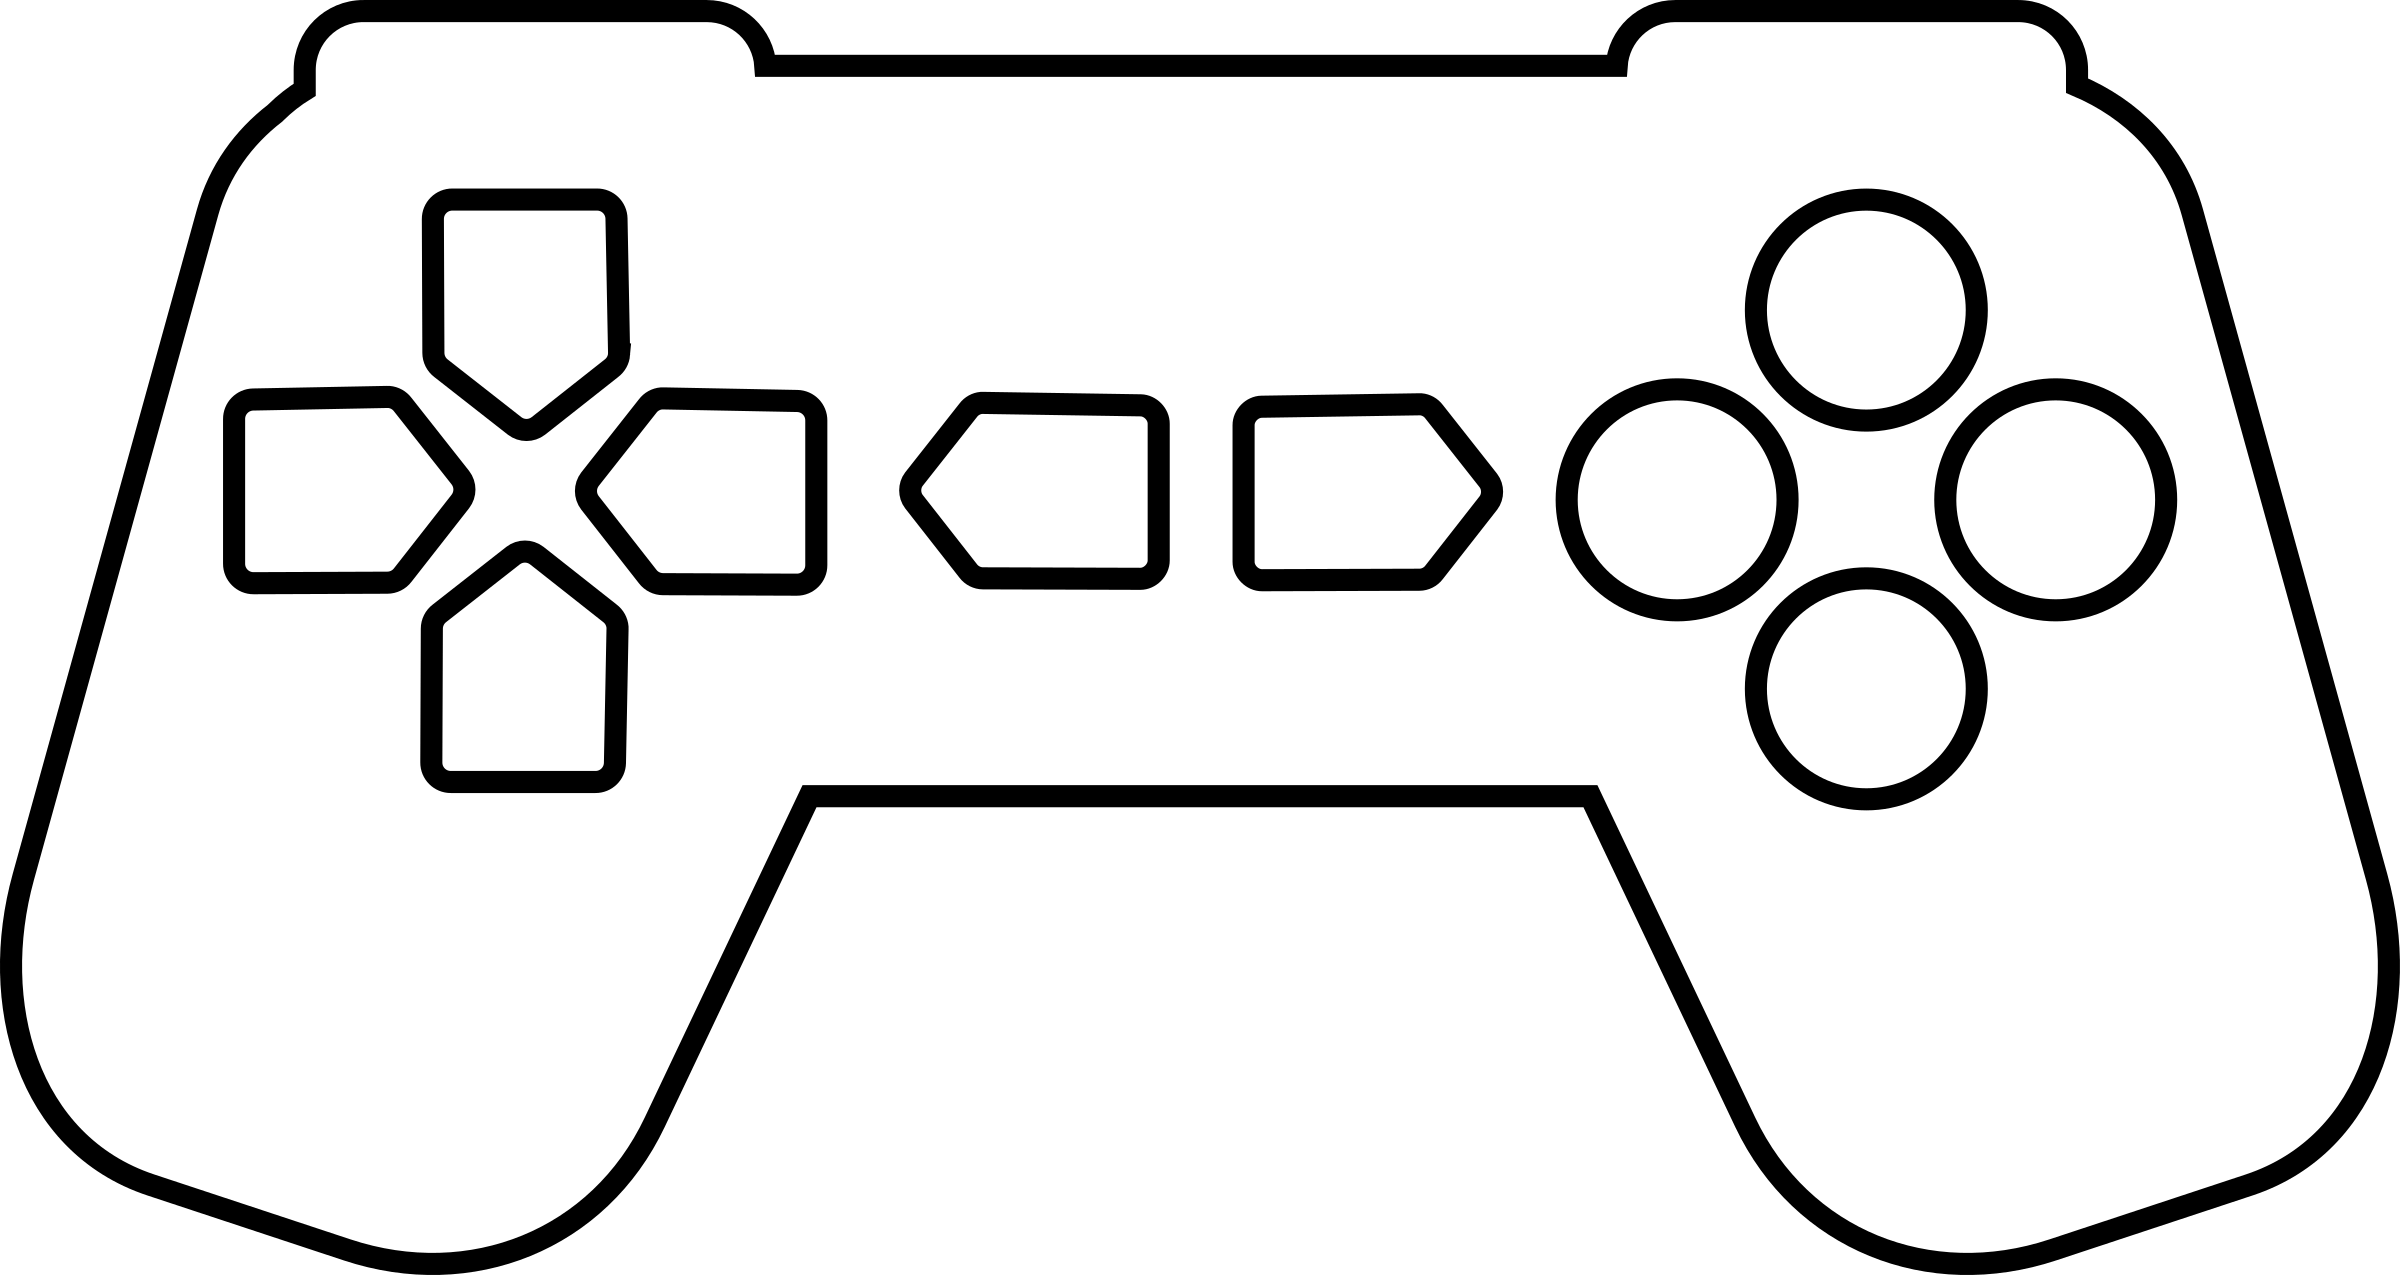 855 Controller Icon Images At Vectorified